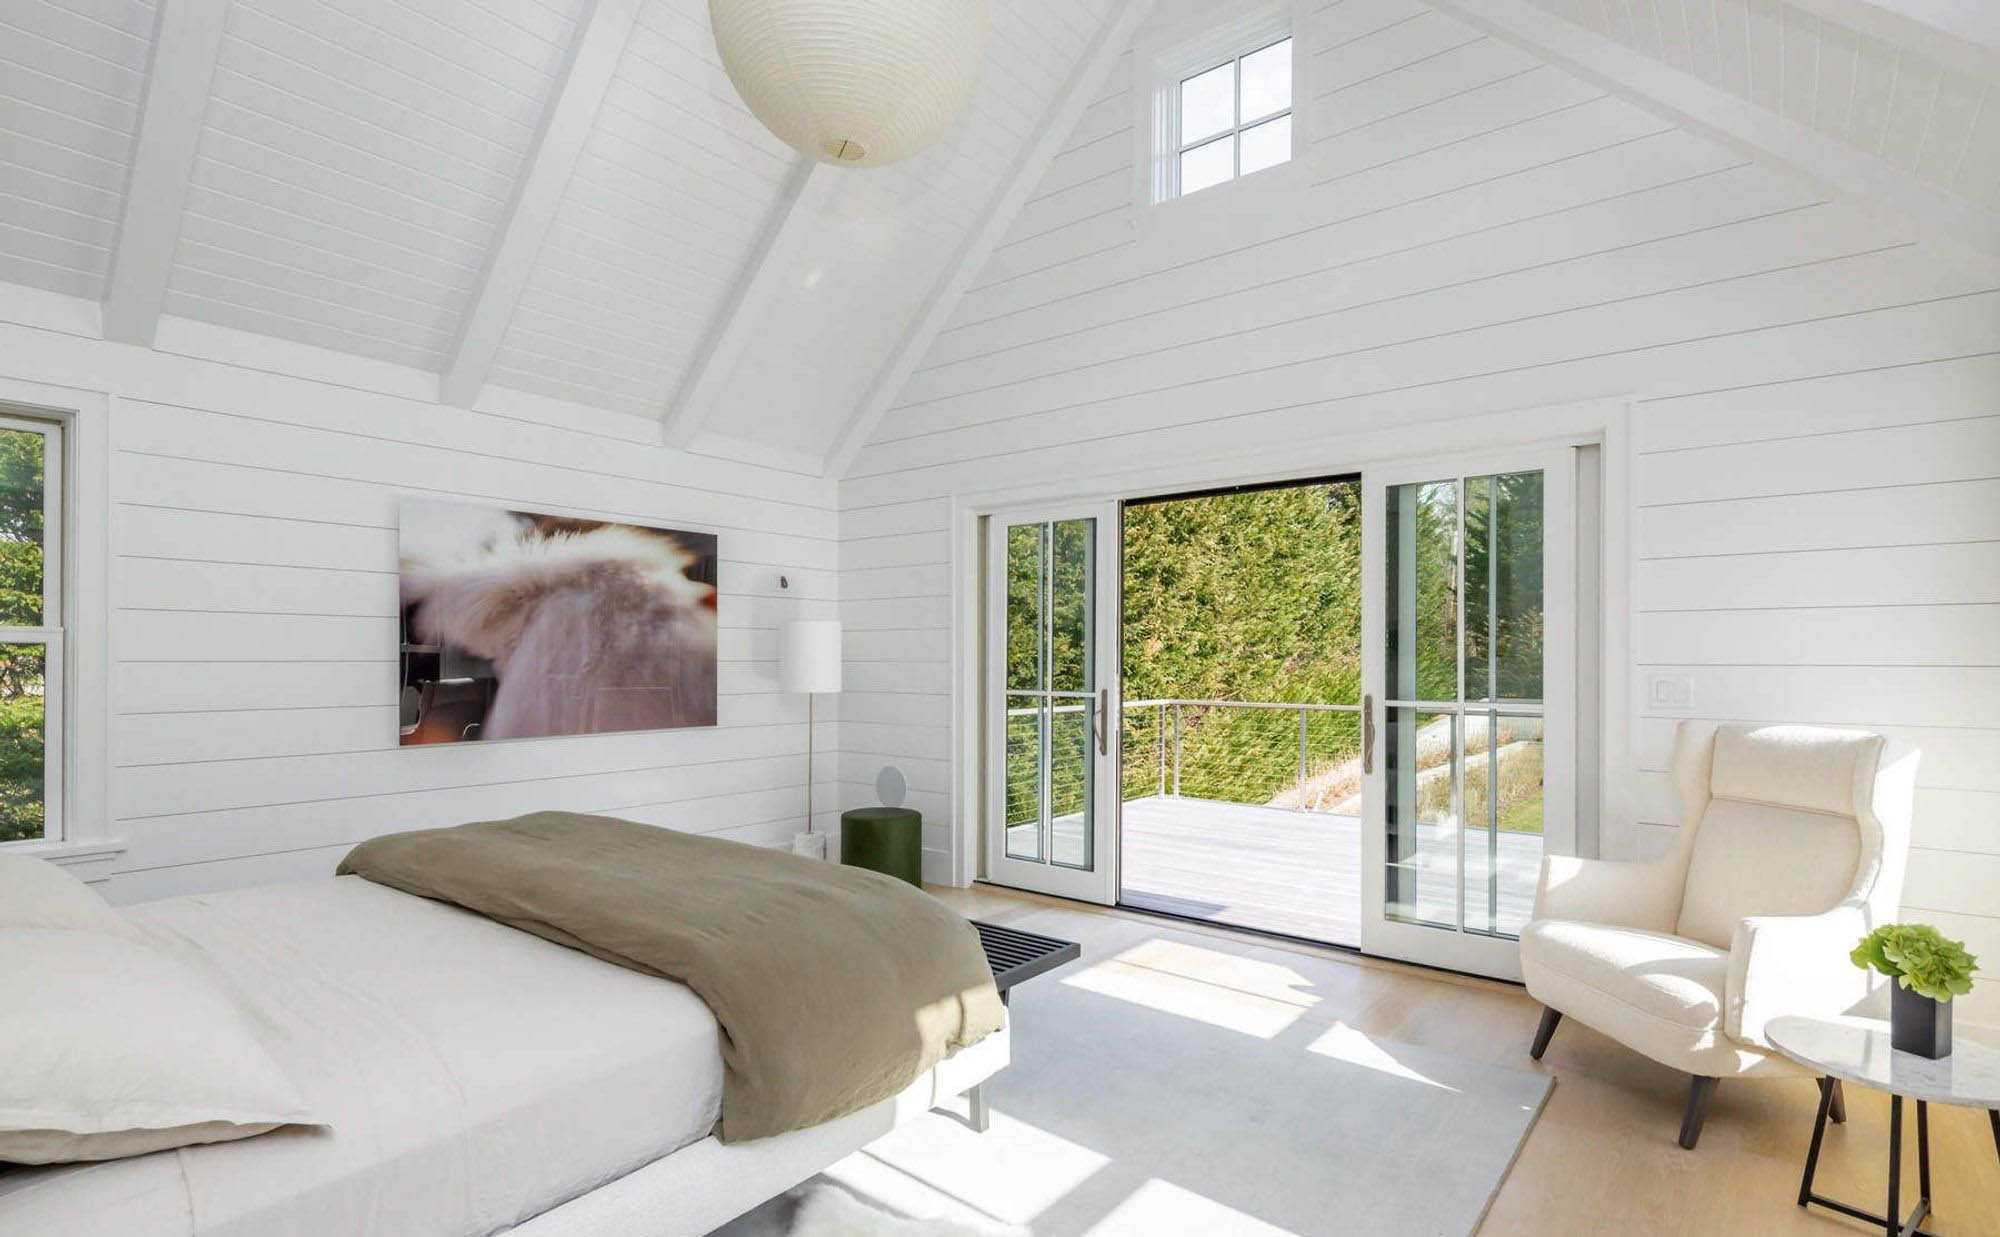 Master bedroom with vaulted ceilings and exposed beams. Horizontal shiplap wall paneling painted all white.